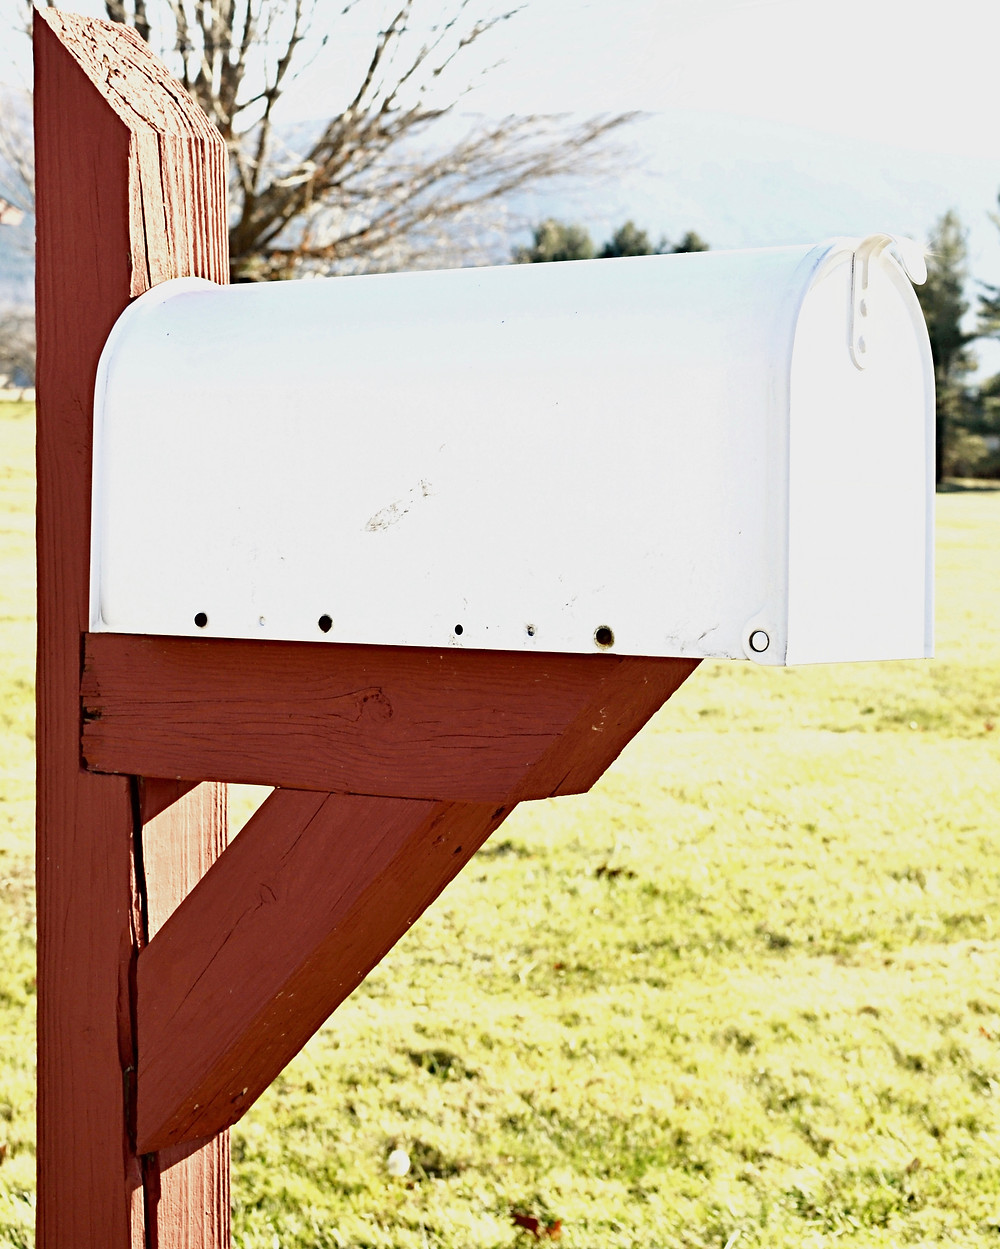 Decorating a Mailbox for the Holidays!